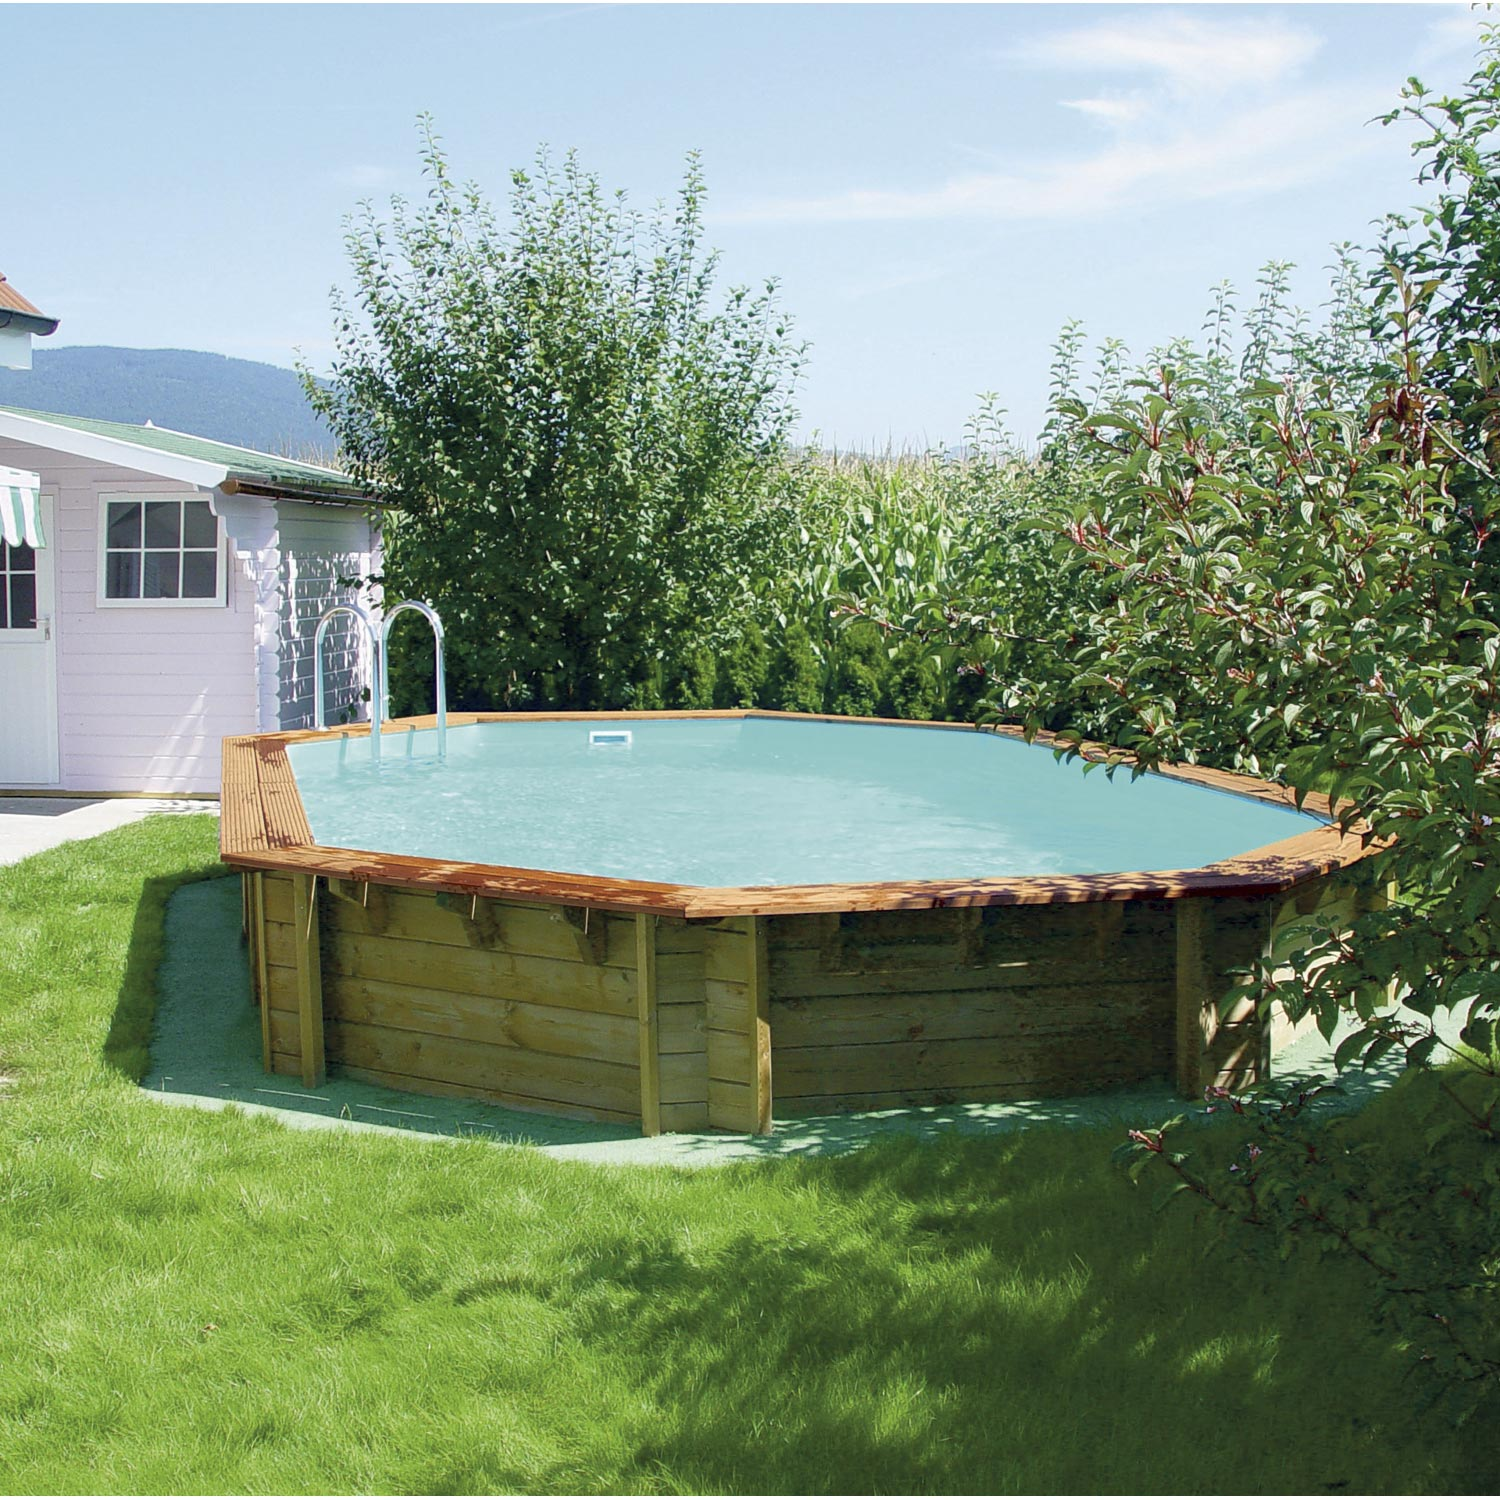 Piscine hors sol bois odyssea l 8 4 x l x h m for Piscine hors sol legislation